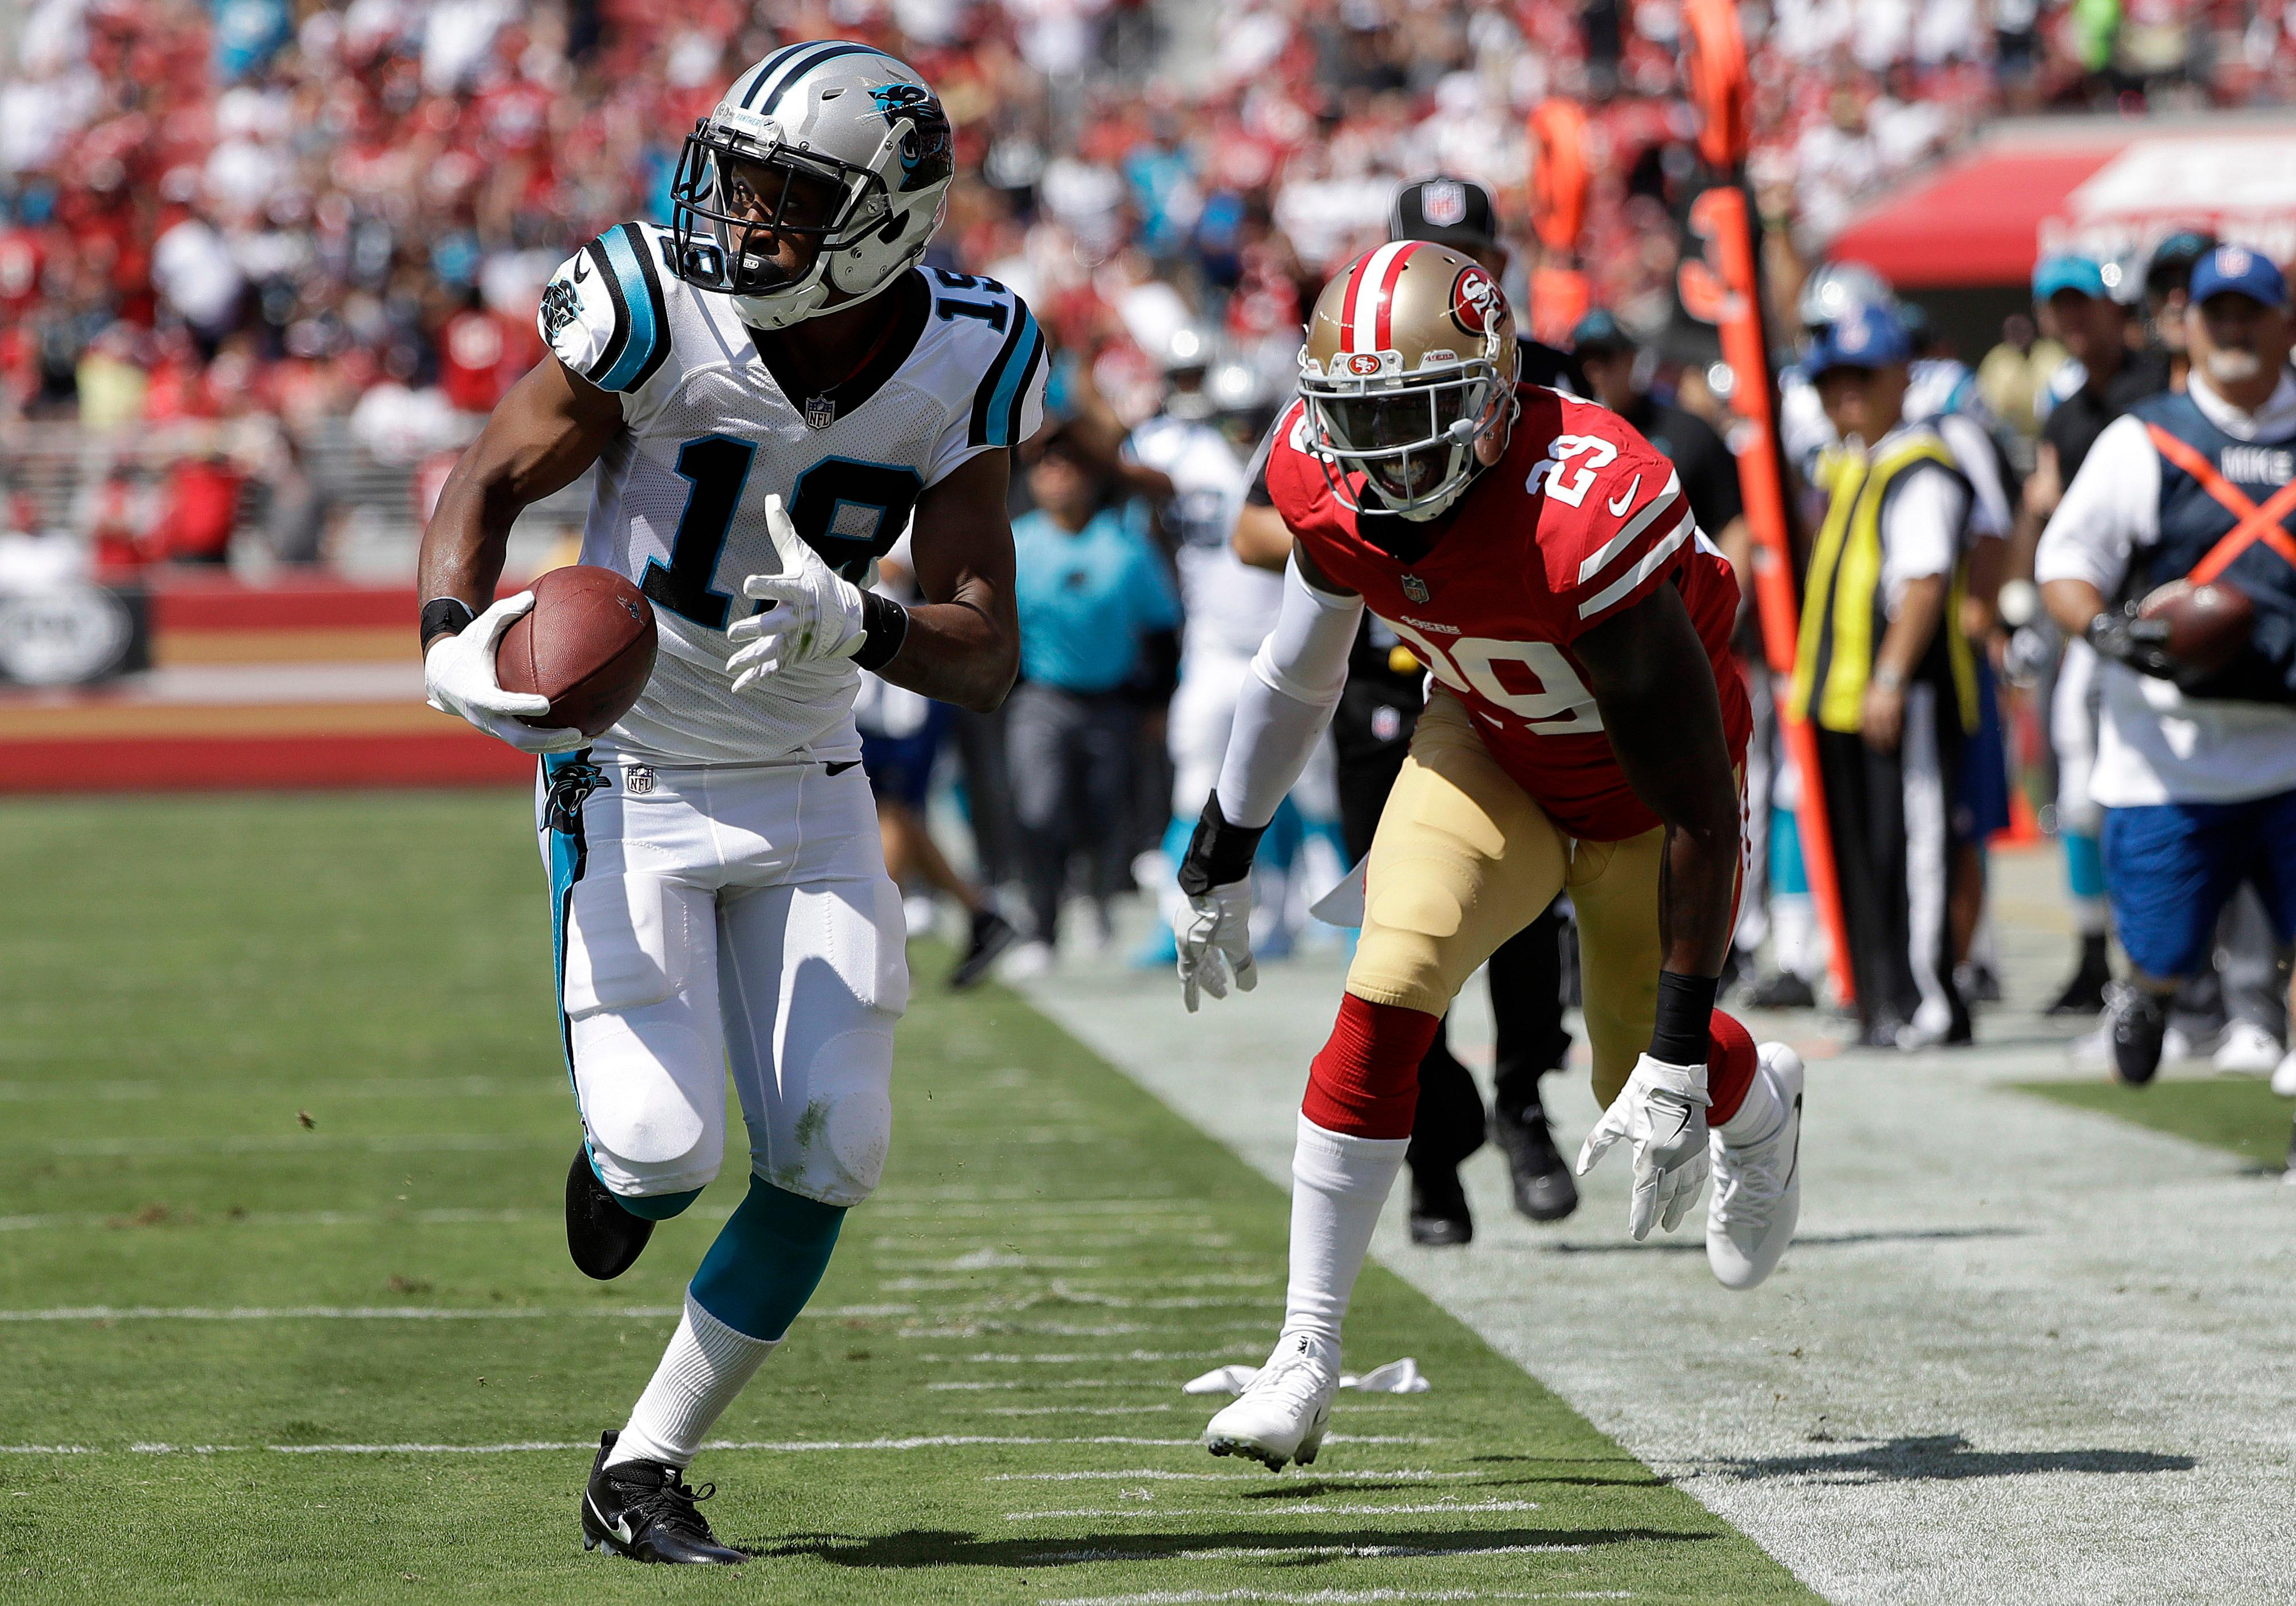 Carolina Panthers wide receiver Russell Shepard (19) runs past San Francisco 49ers strong safety Jaquiski Tartt (29) to score a touchdown during the first half of an NFL football game in Santa Clara, Calif., Sunday, Sept. 10, 2017. (AP Photo/Marcio Jose Sanchez)